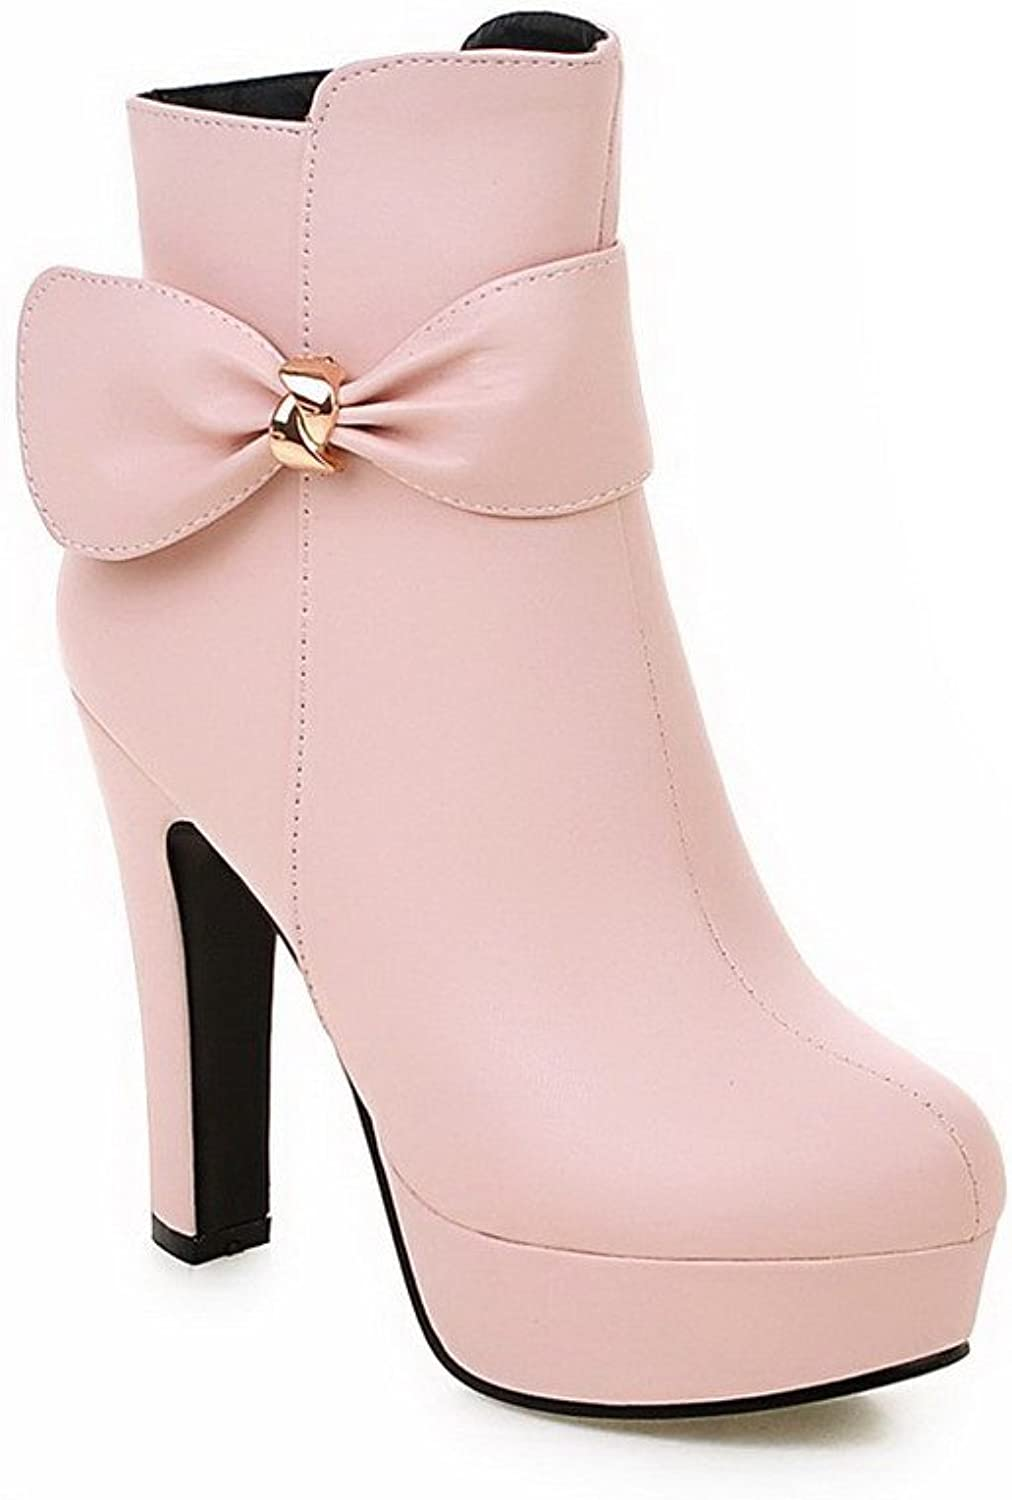 AllhqFashion Women's Round Closed Toe Solid Low Top High Heels Boots with Bows